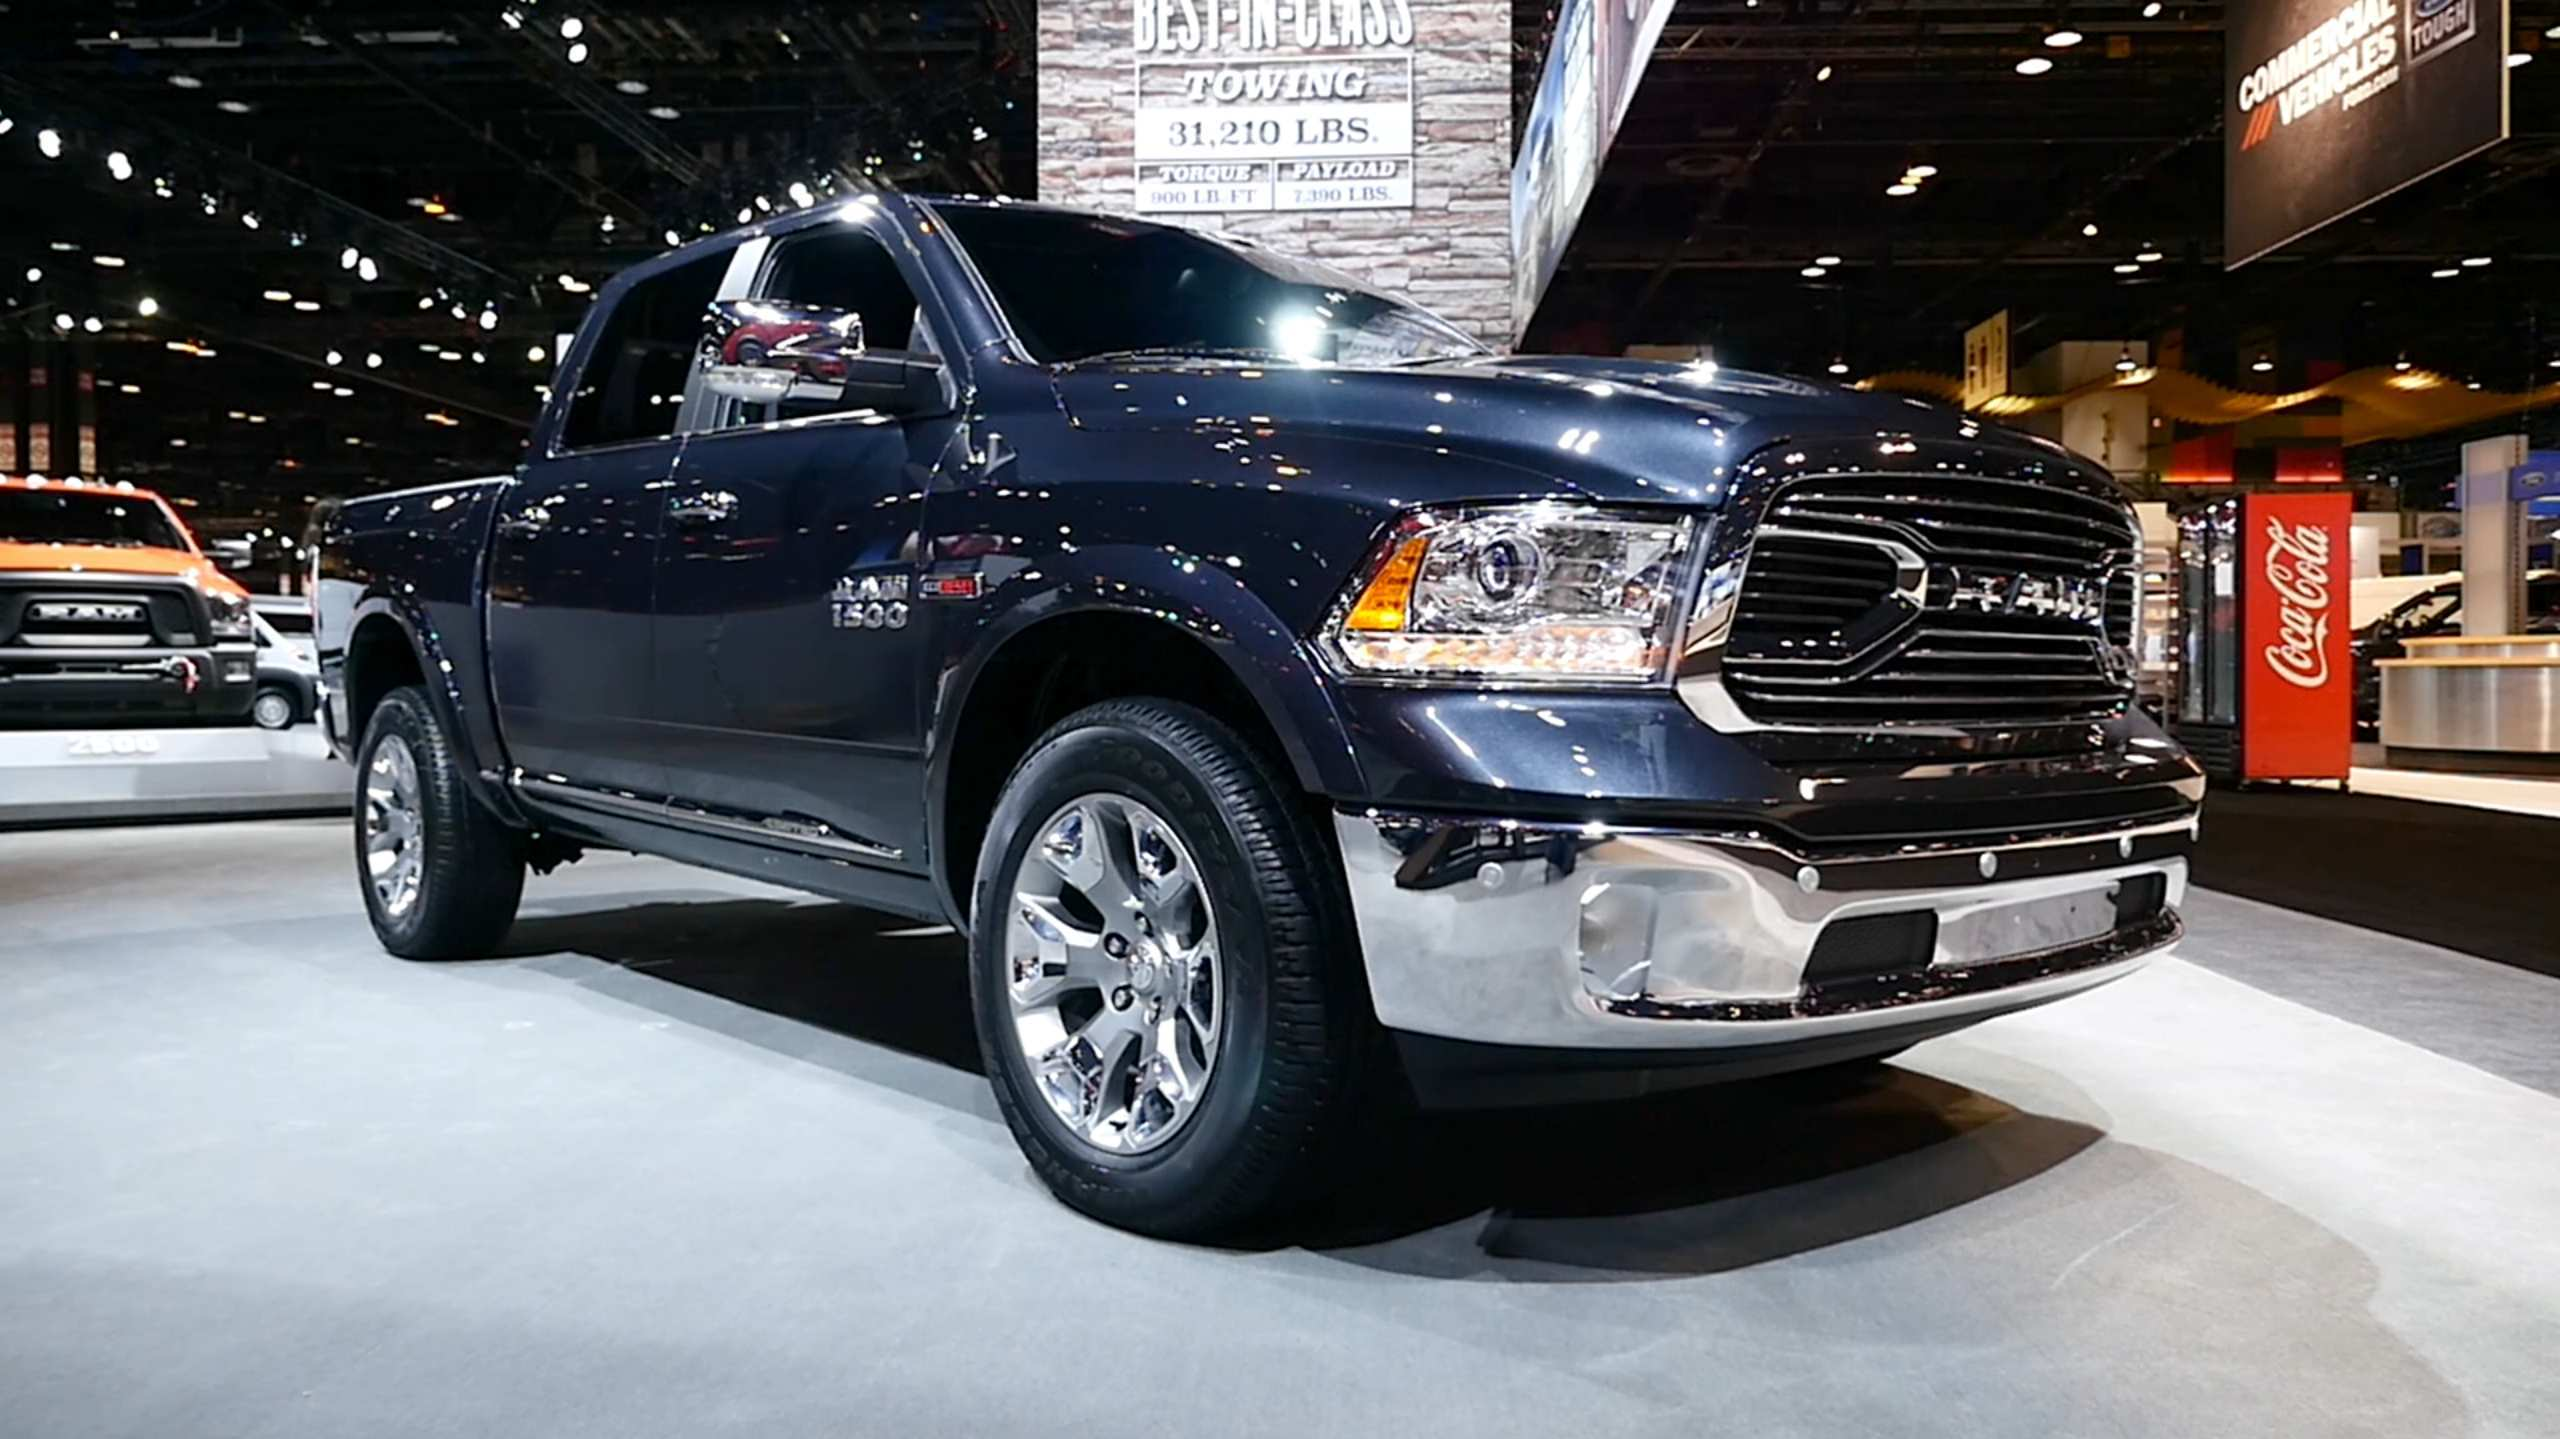 66 Best Review 2019 Dodge Ecodiesel Release Date Model with 2019 Dodge Ecodiesel Release Date